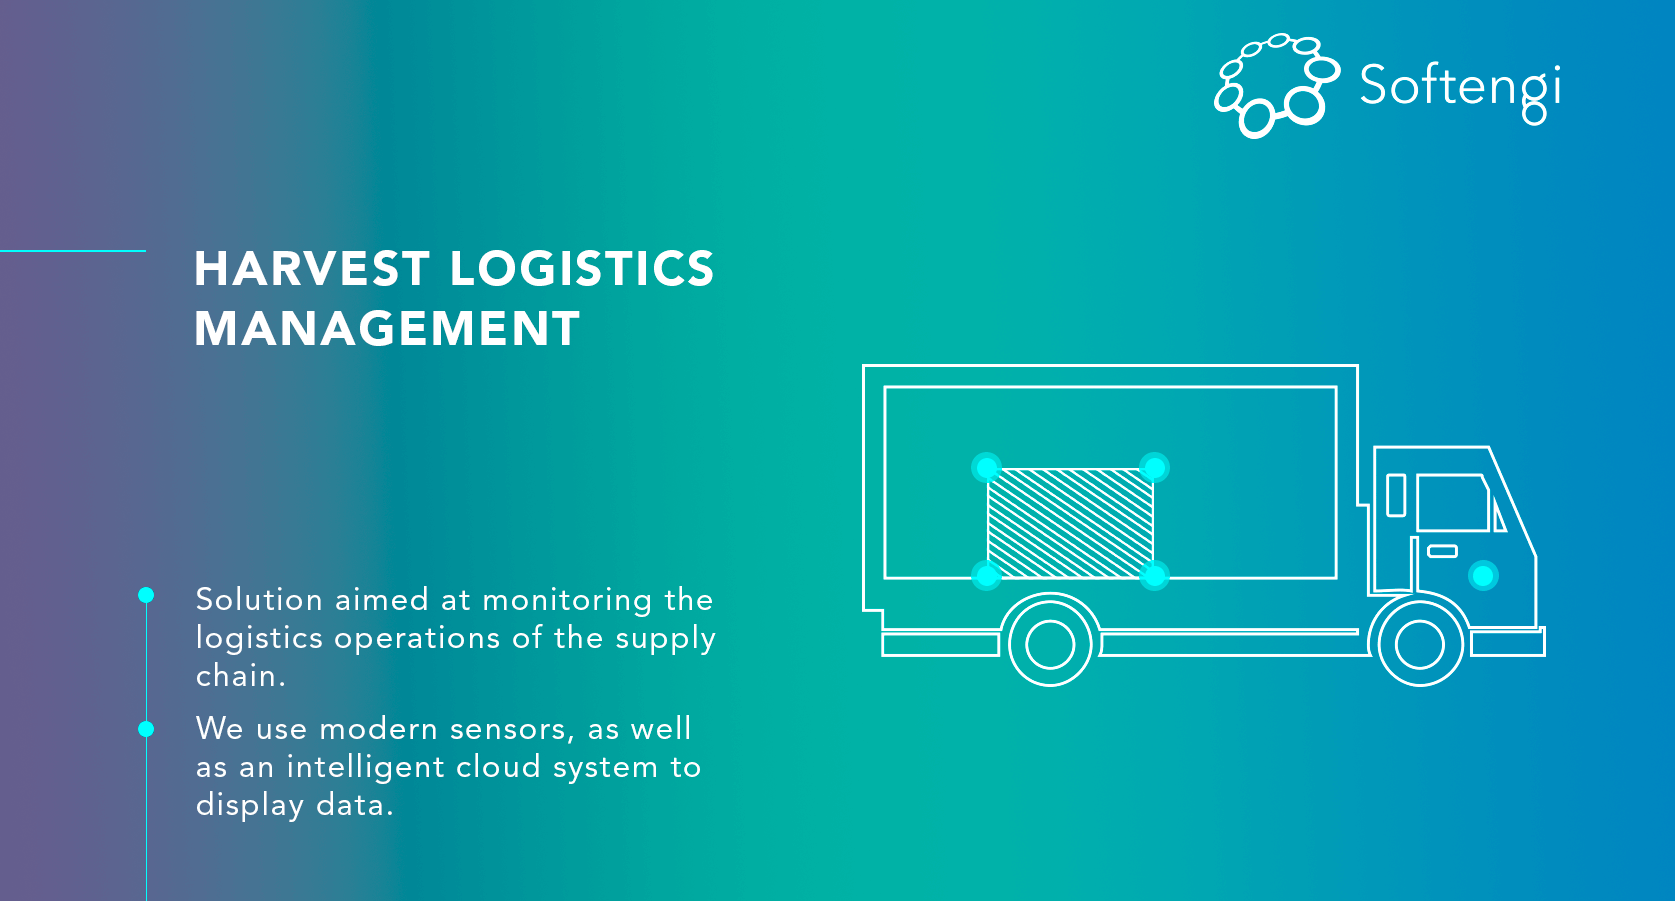 Harvest Logistics Management Softengi